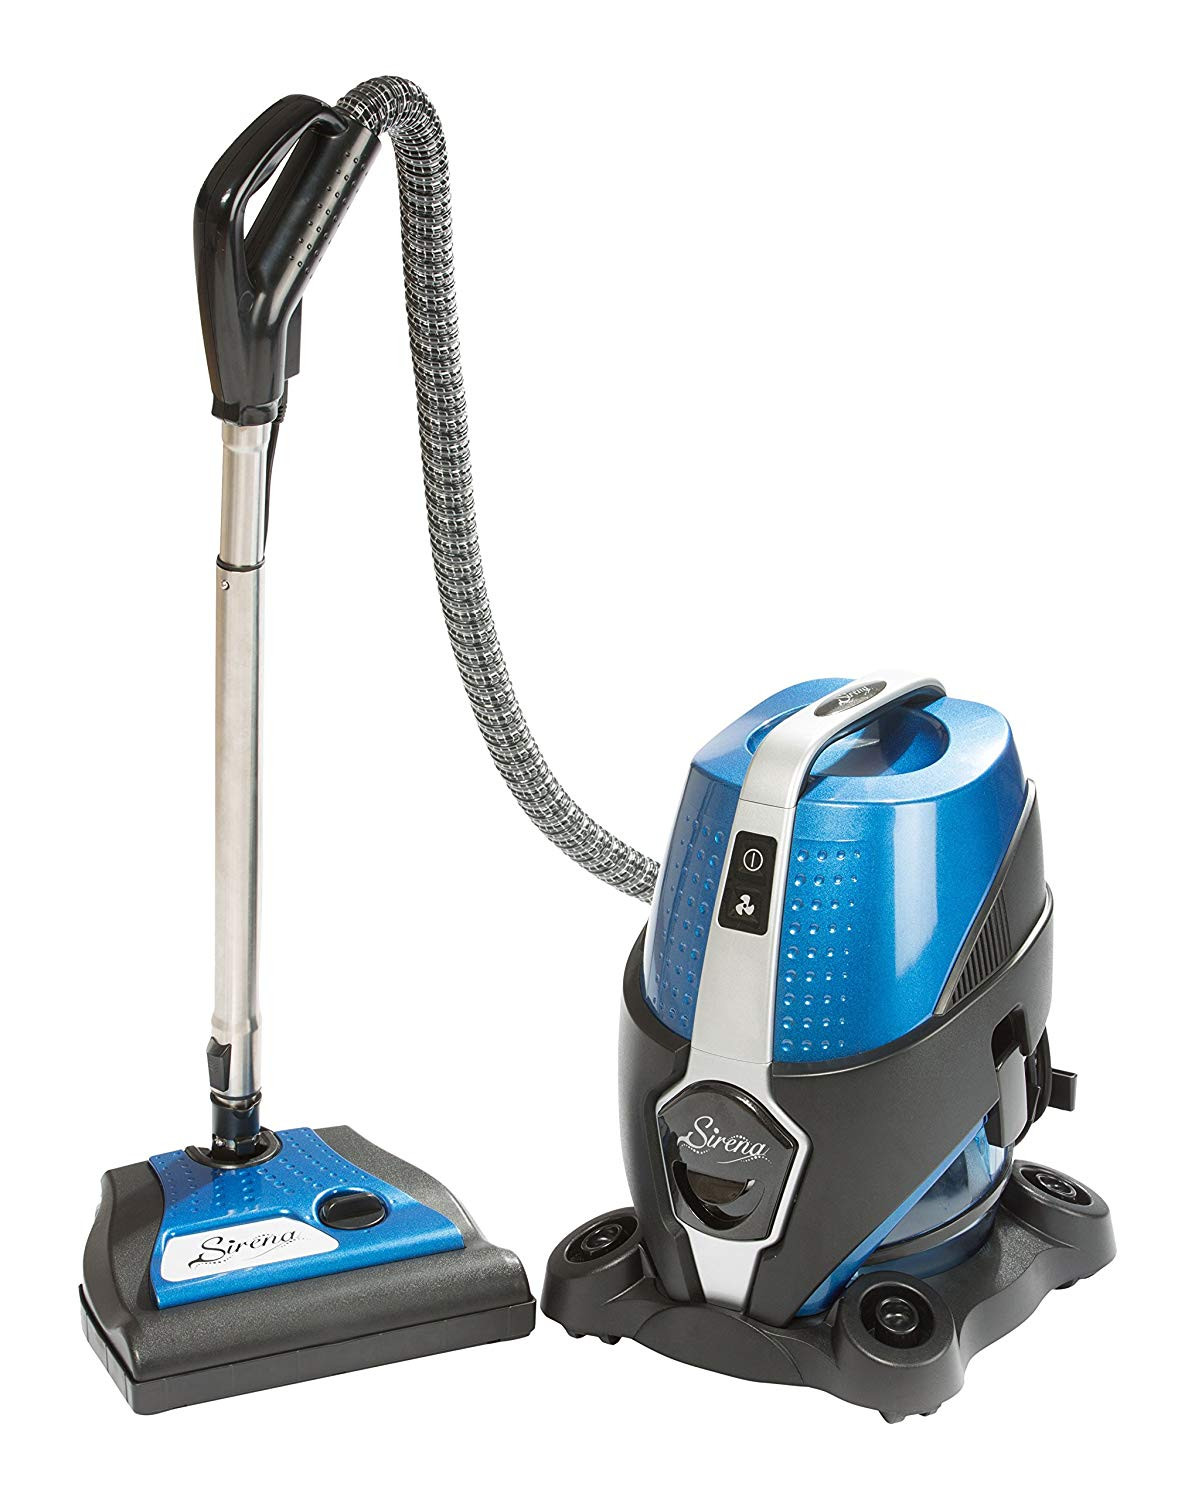 top vacuum cleaners for hardwood floors of amazon com bunn sirena vacuum w water filtration pertaining to 81uolwpgd8l sl1500